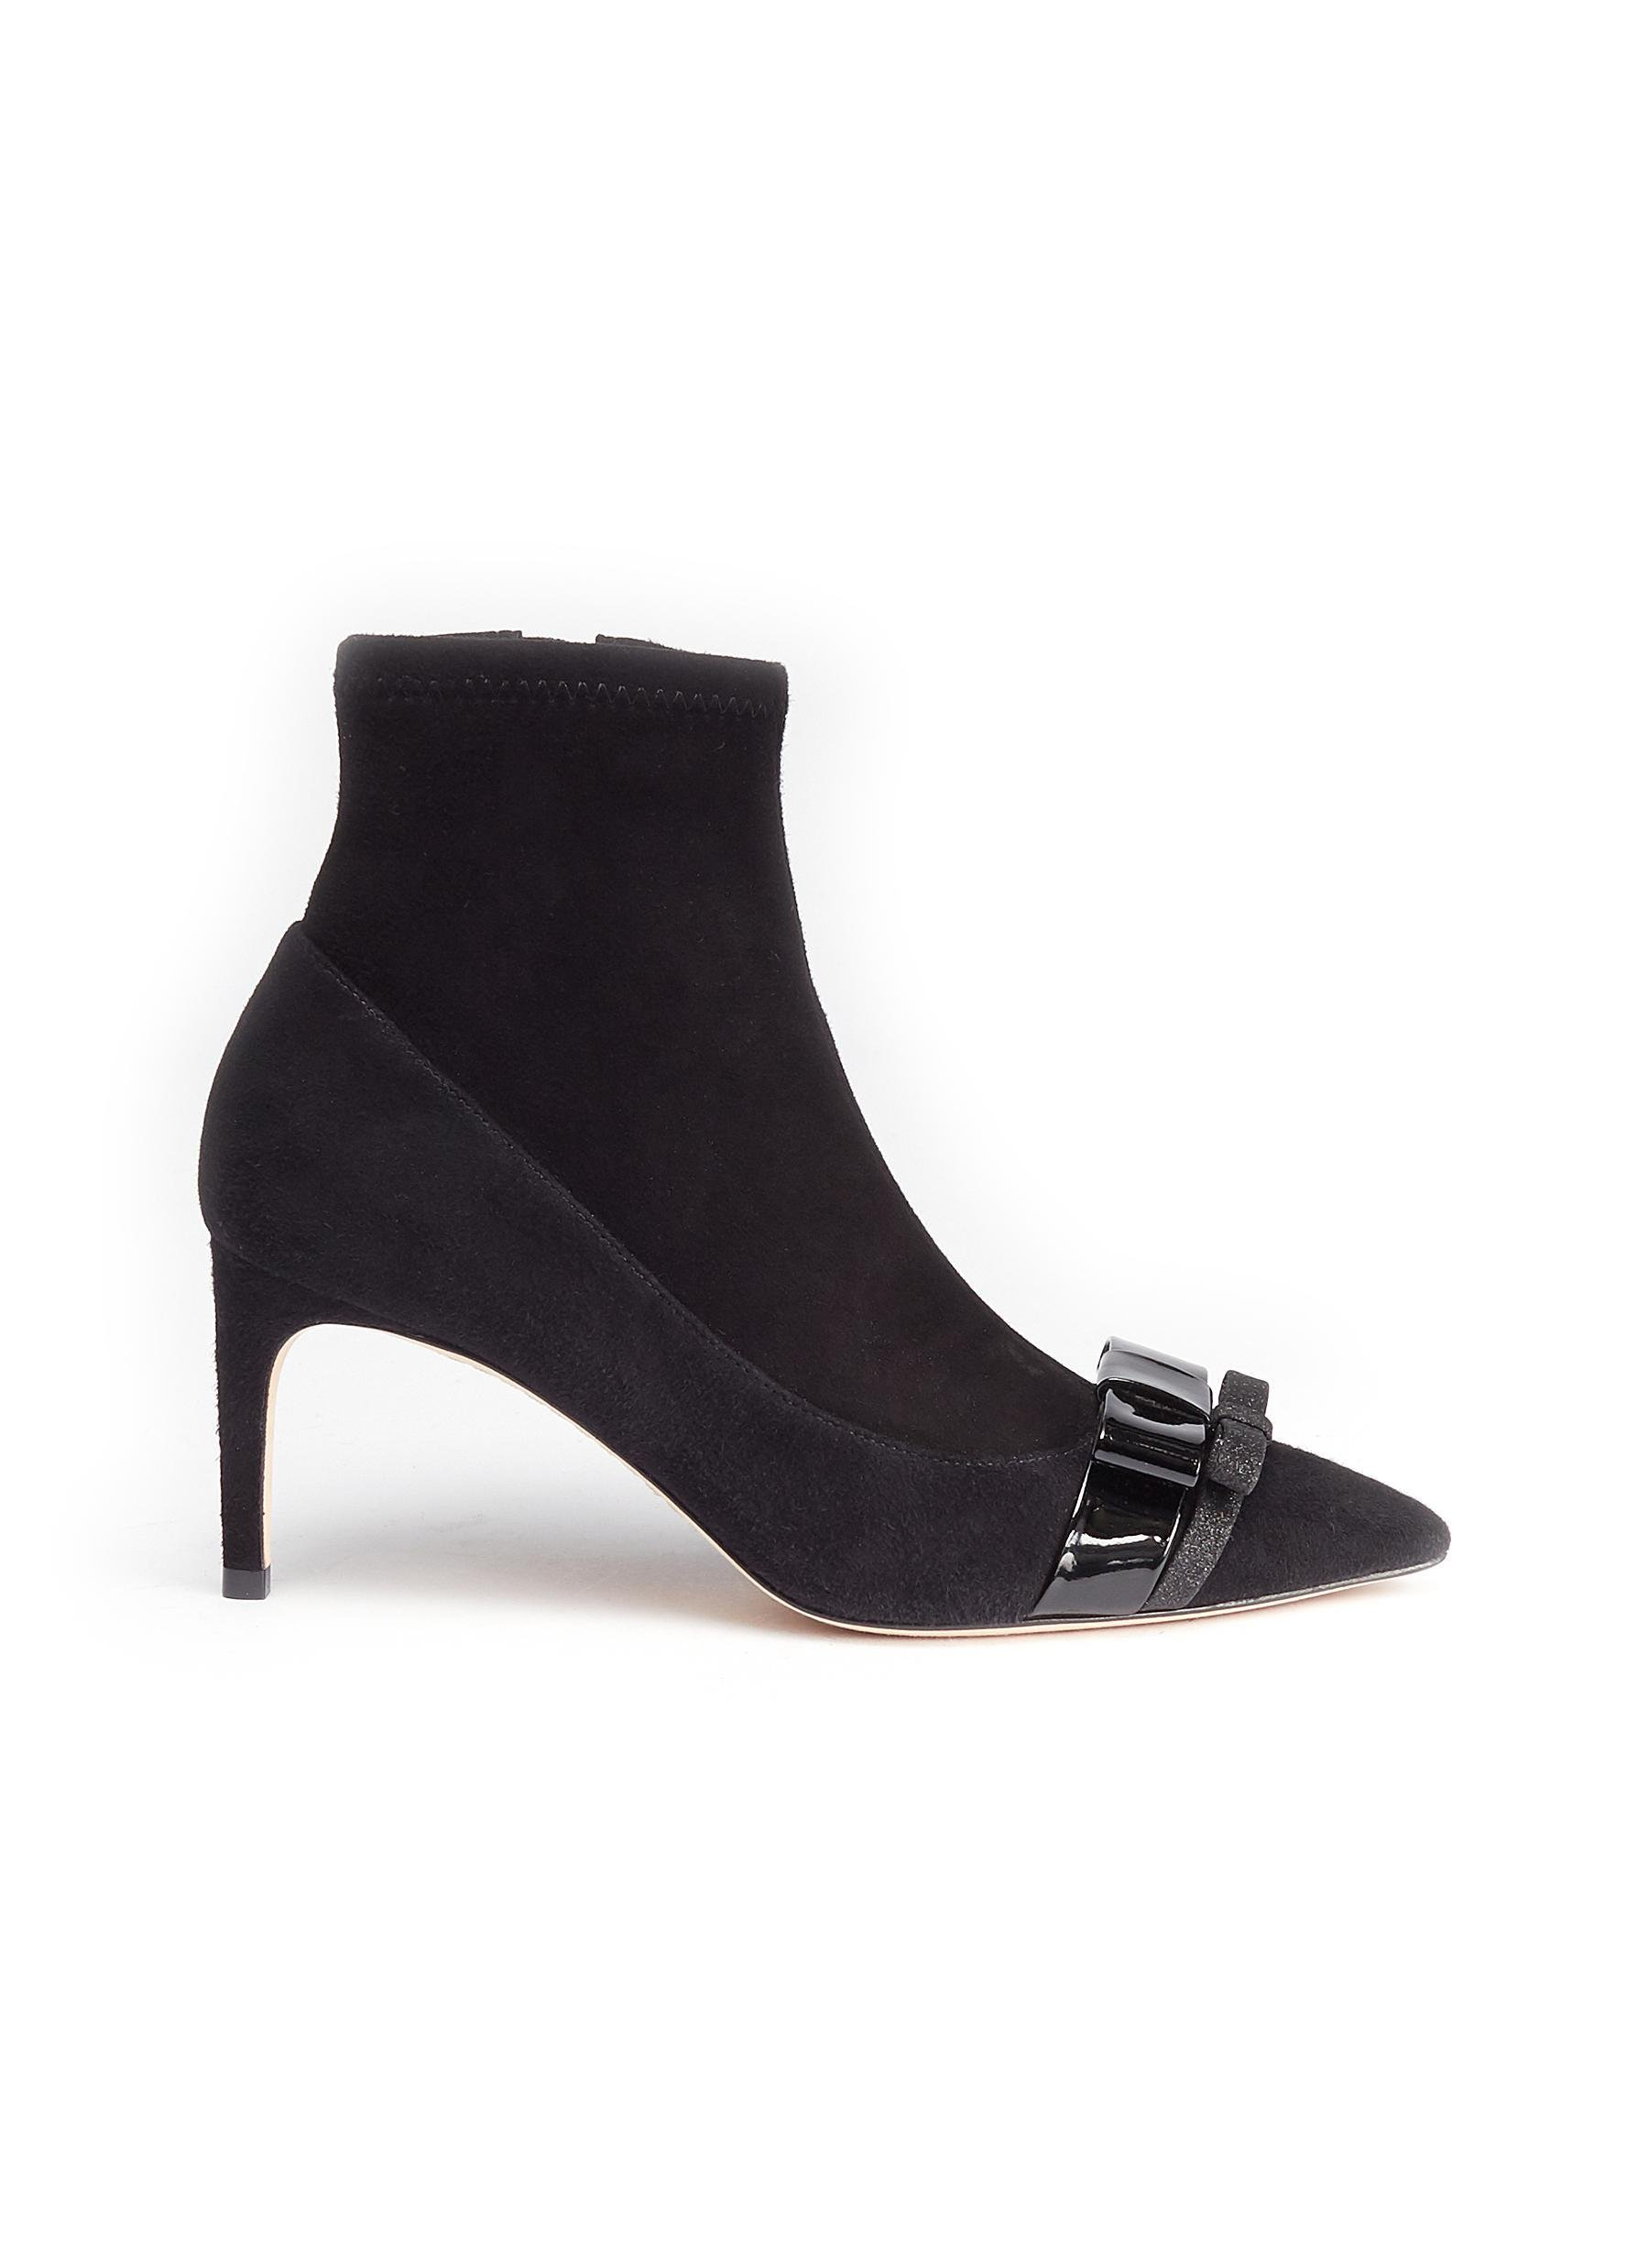 'andie Black In Lyst Sophia Webster Boots Ankle Bow' Suede 4j5LAq3R